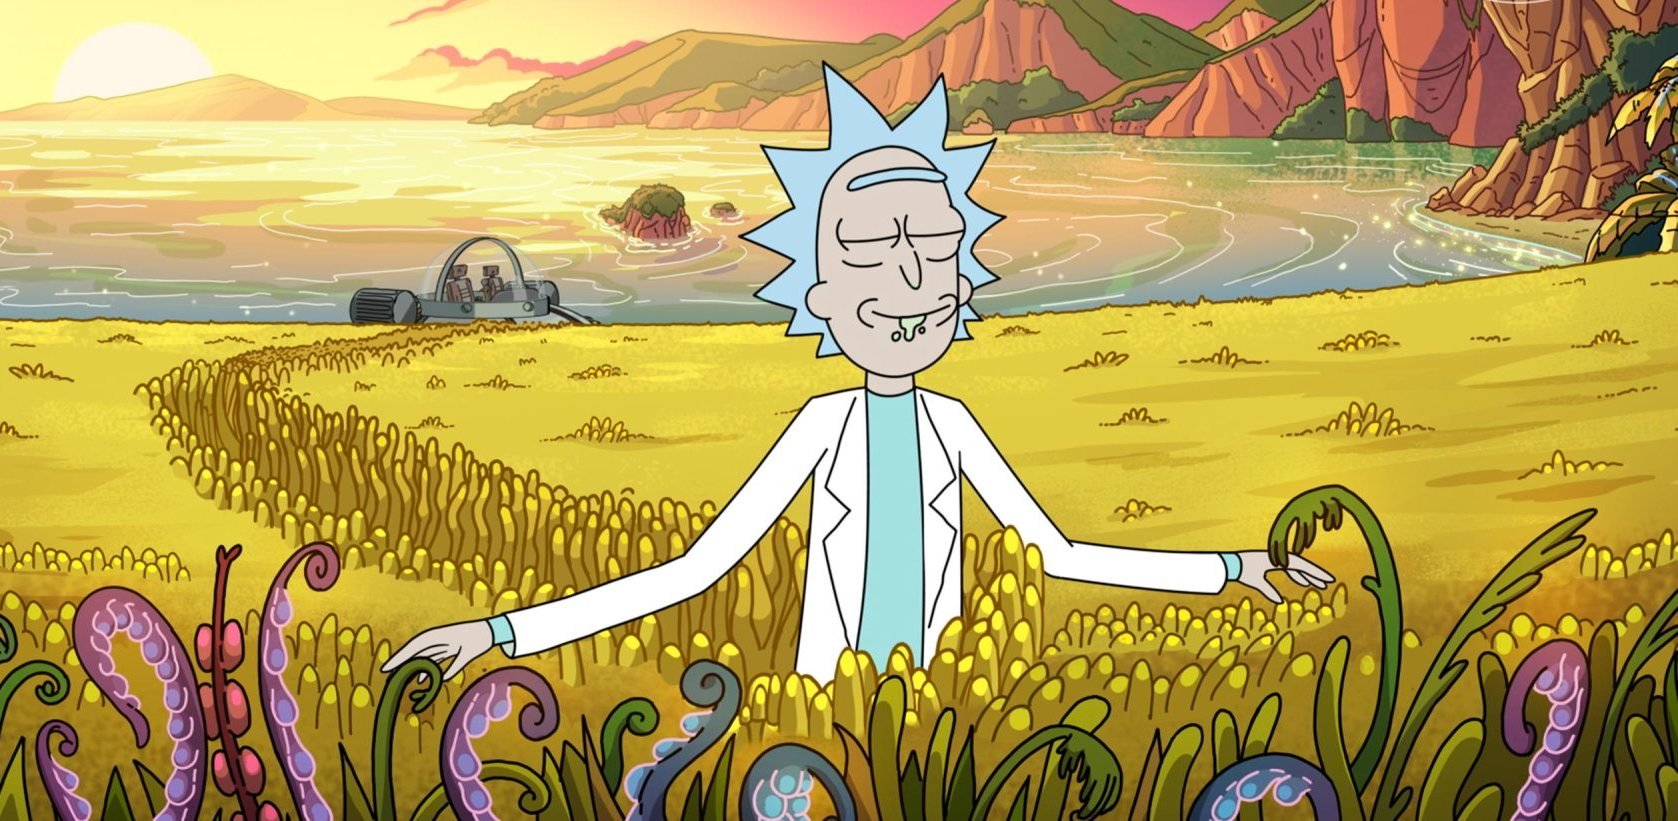 rick and morty season 4 episode 2 - photo #2